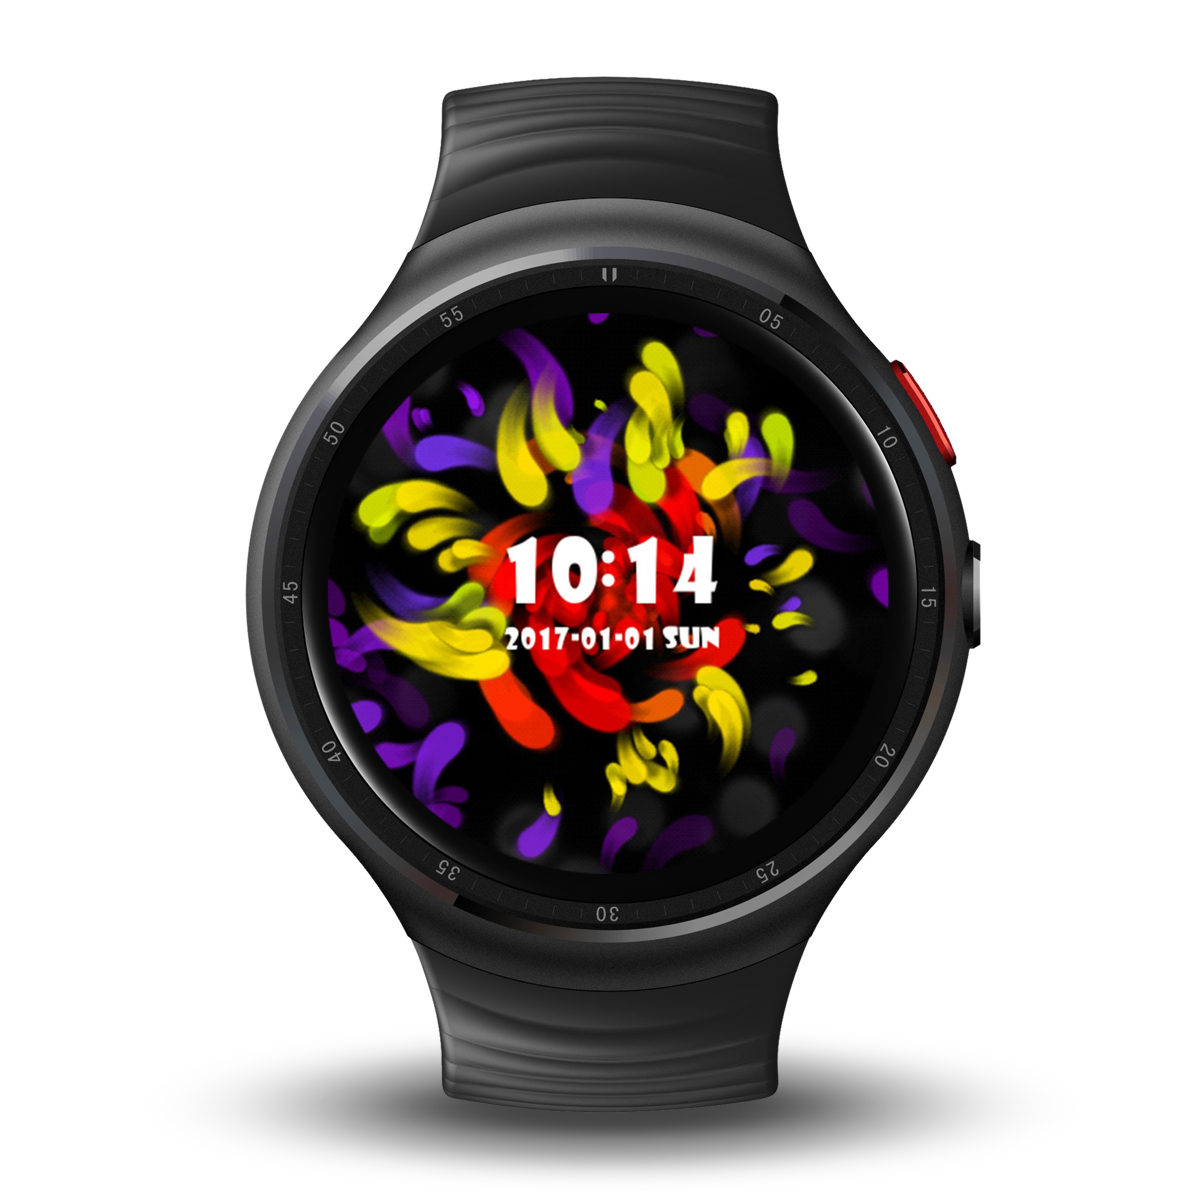 Wholesale LEMFO LES 1 Watch Phone-1 IMEI, 3G, 2MP Camera, WiFi, Music, Pedometer, Heart Rate, Android OS